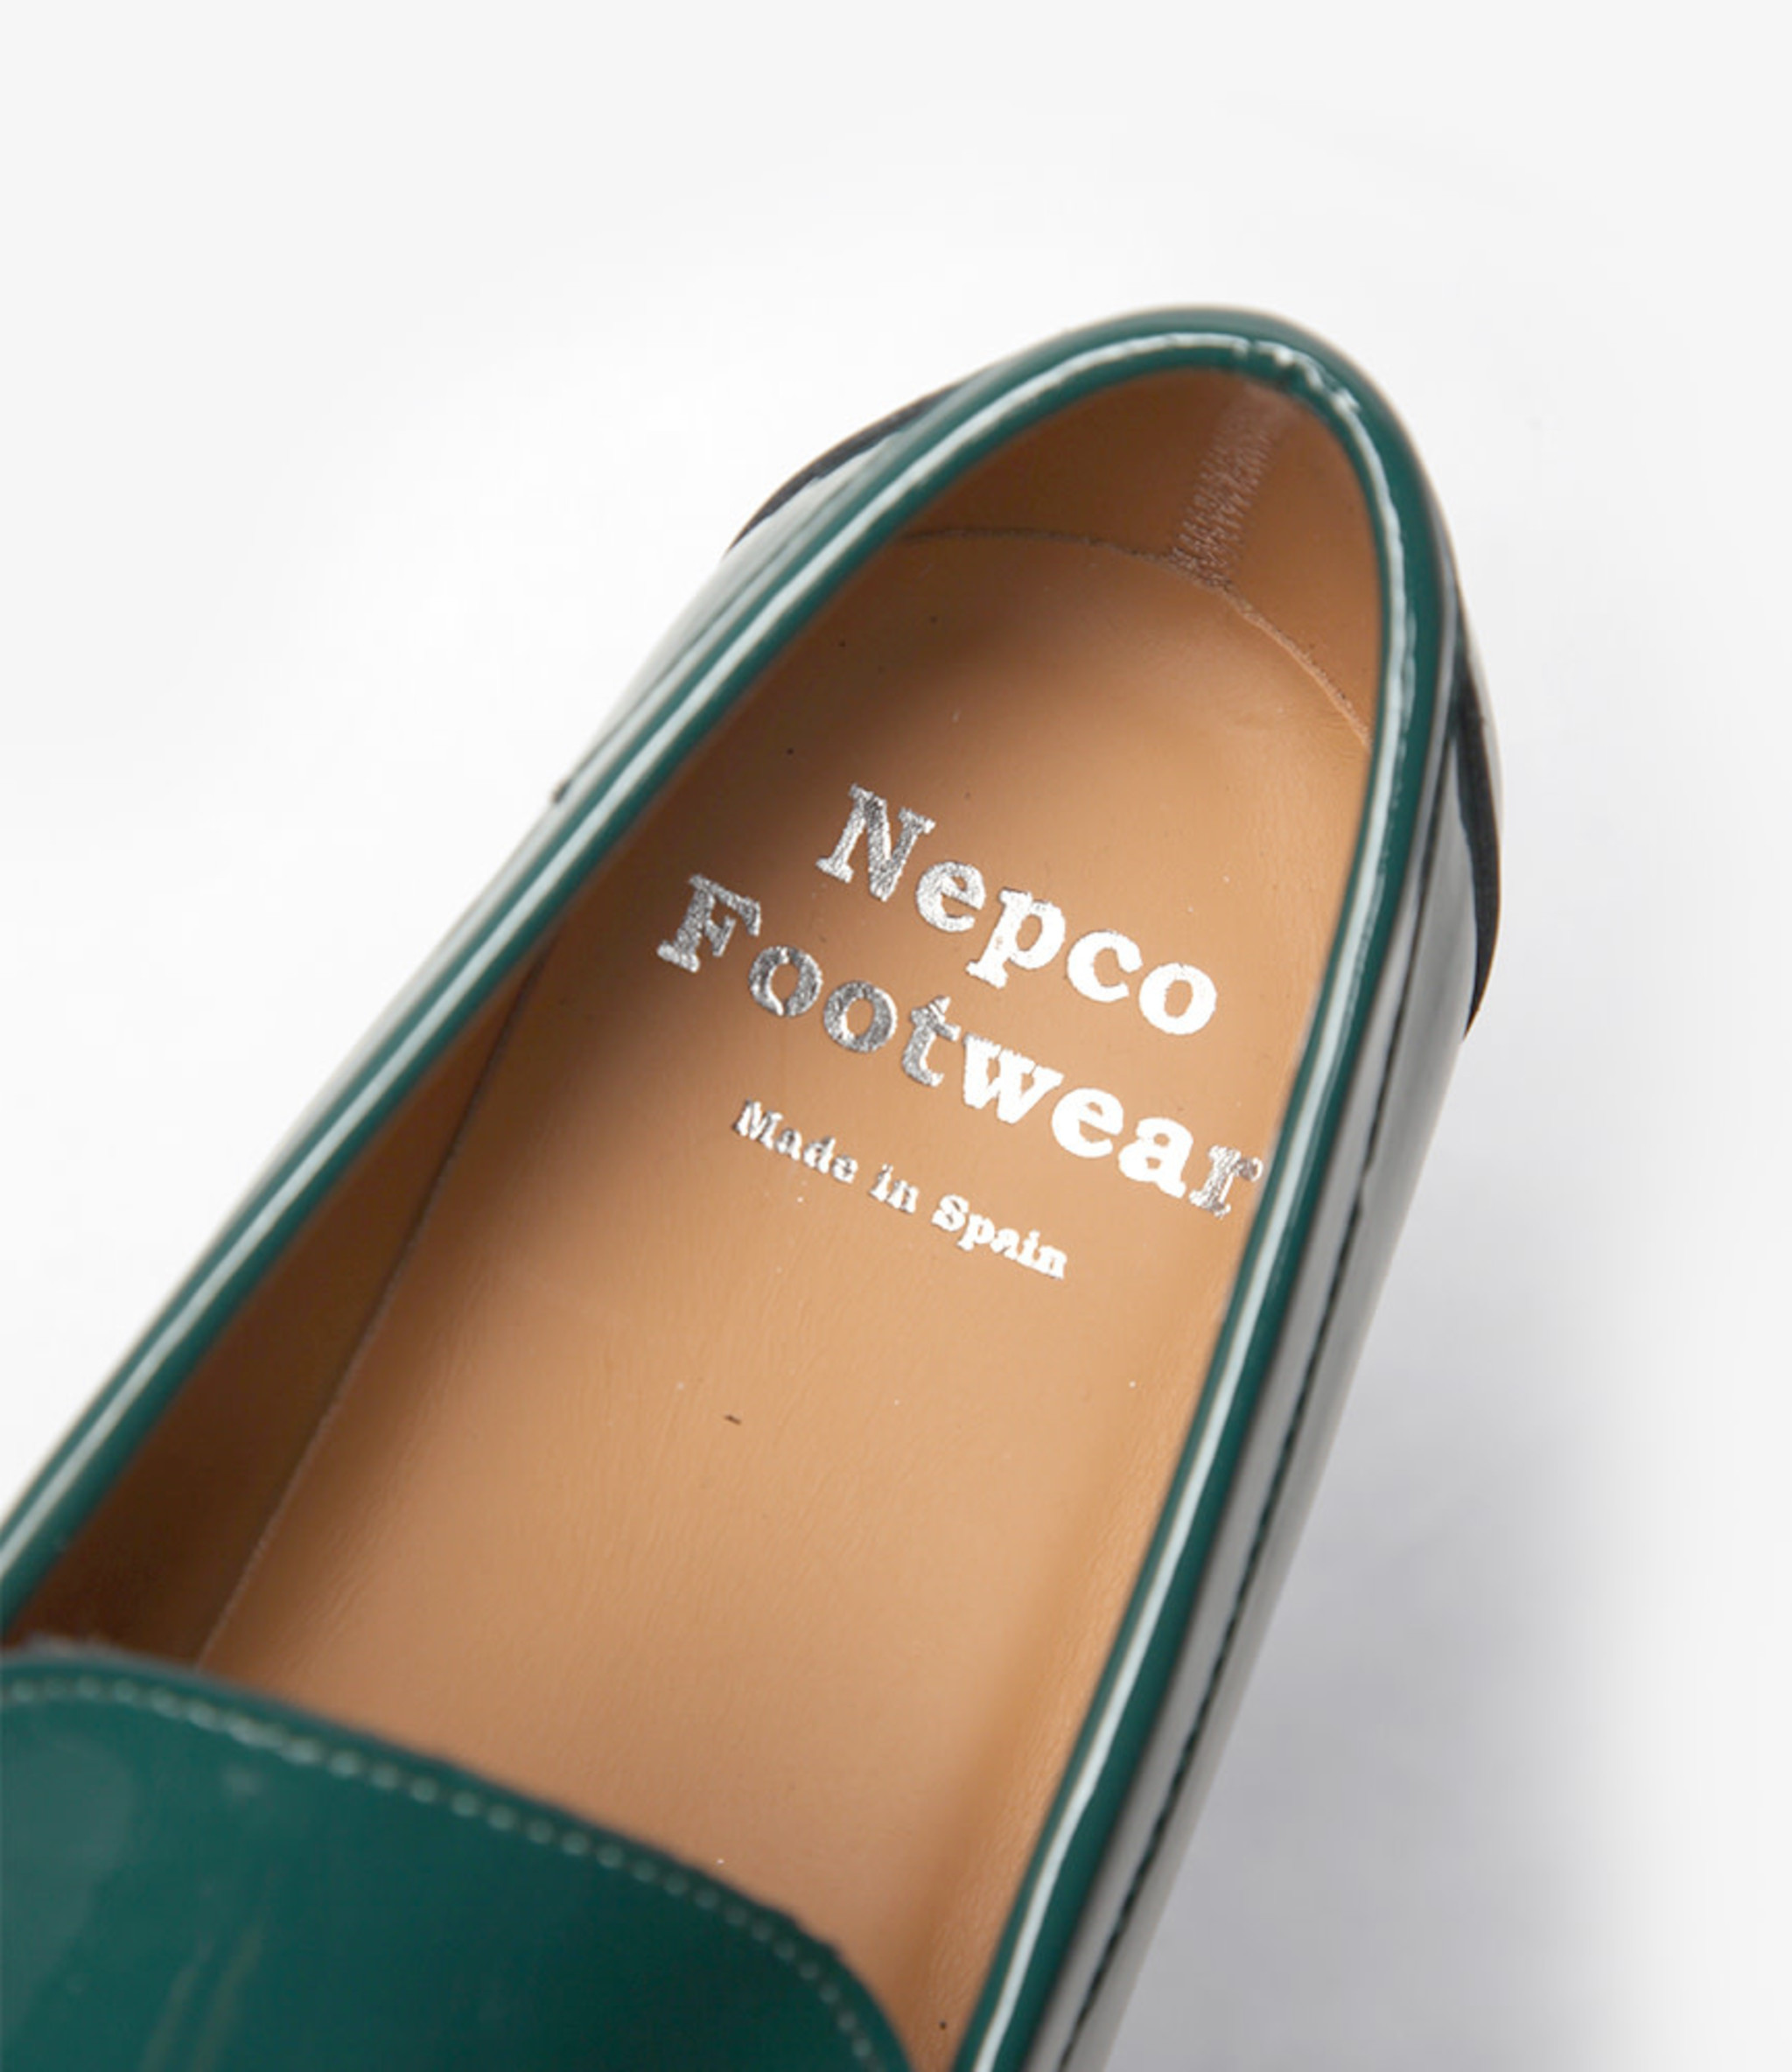 Nepco Entercarne Bit Moccasin with Combo Sole